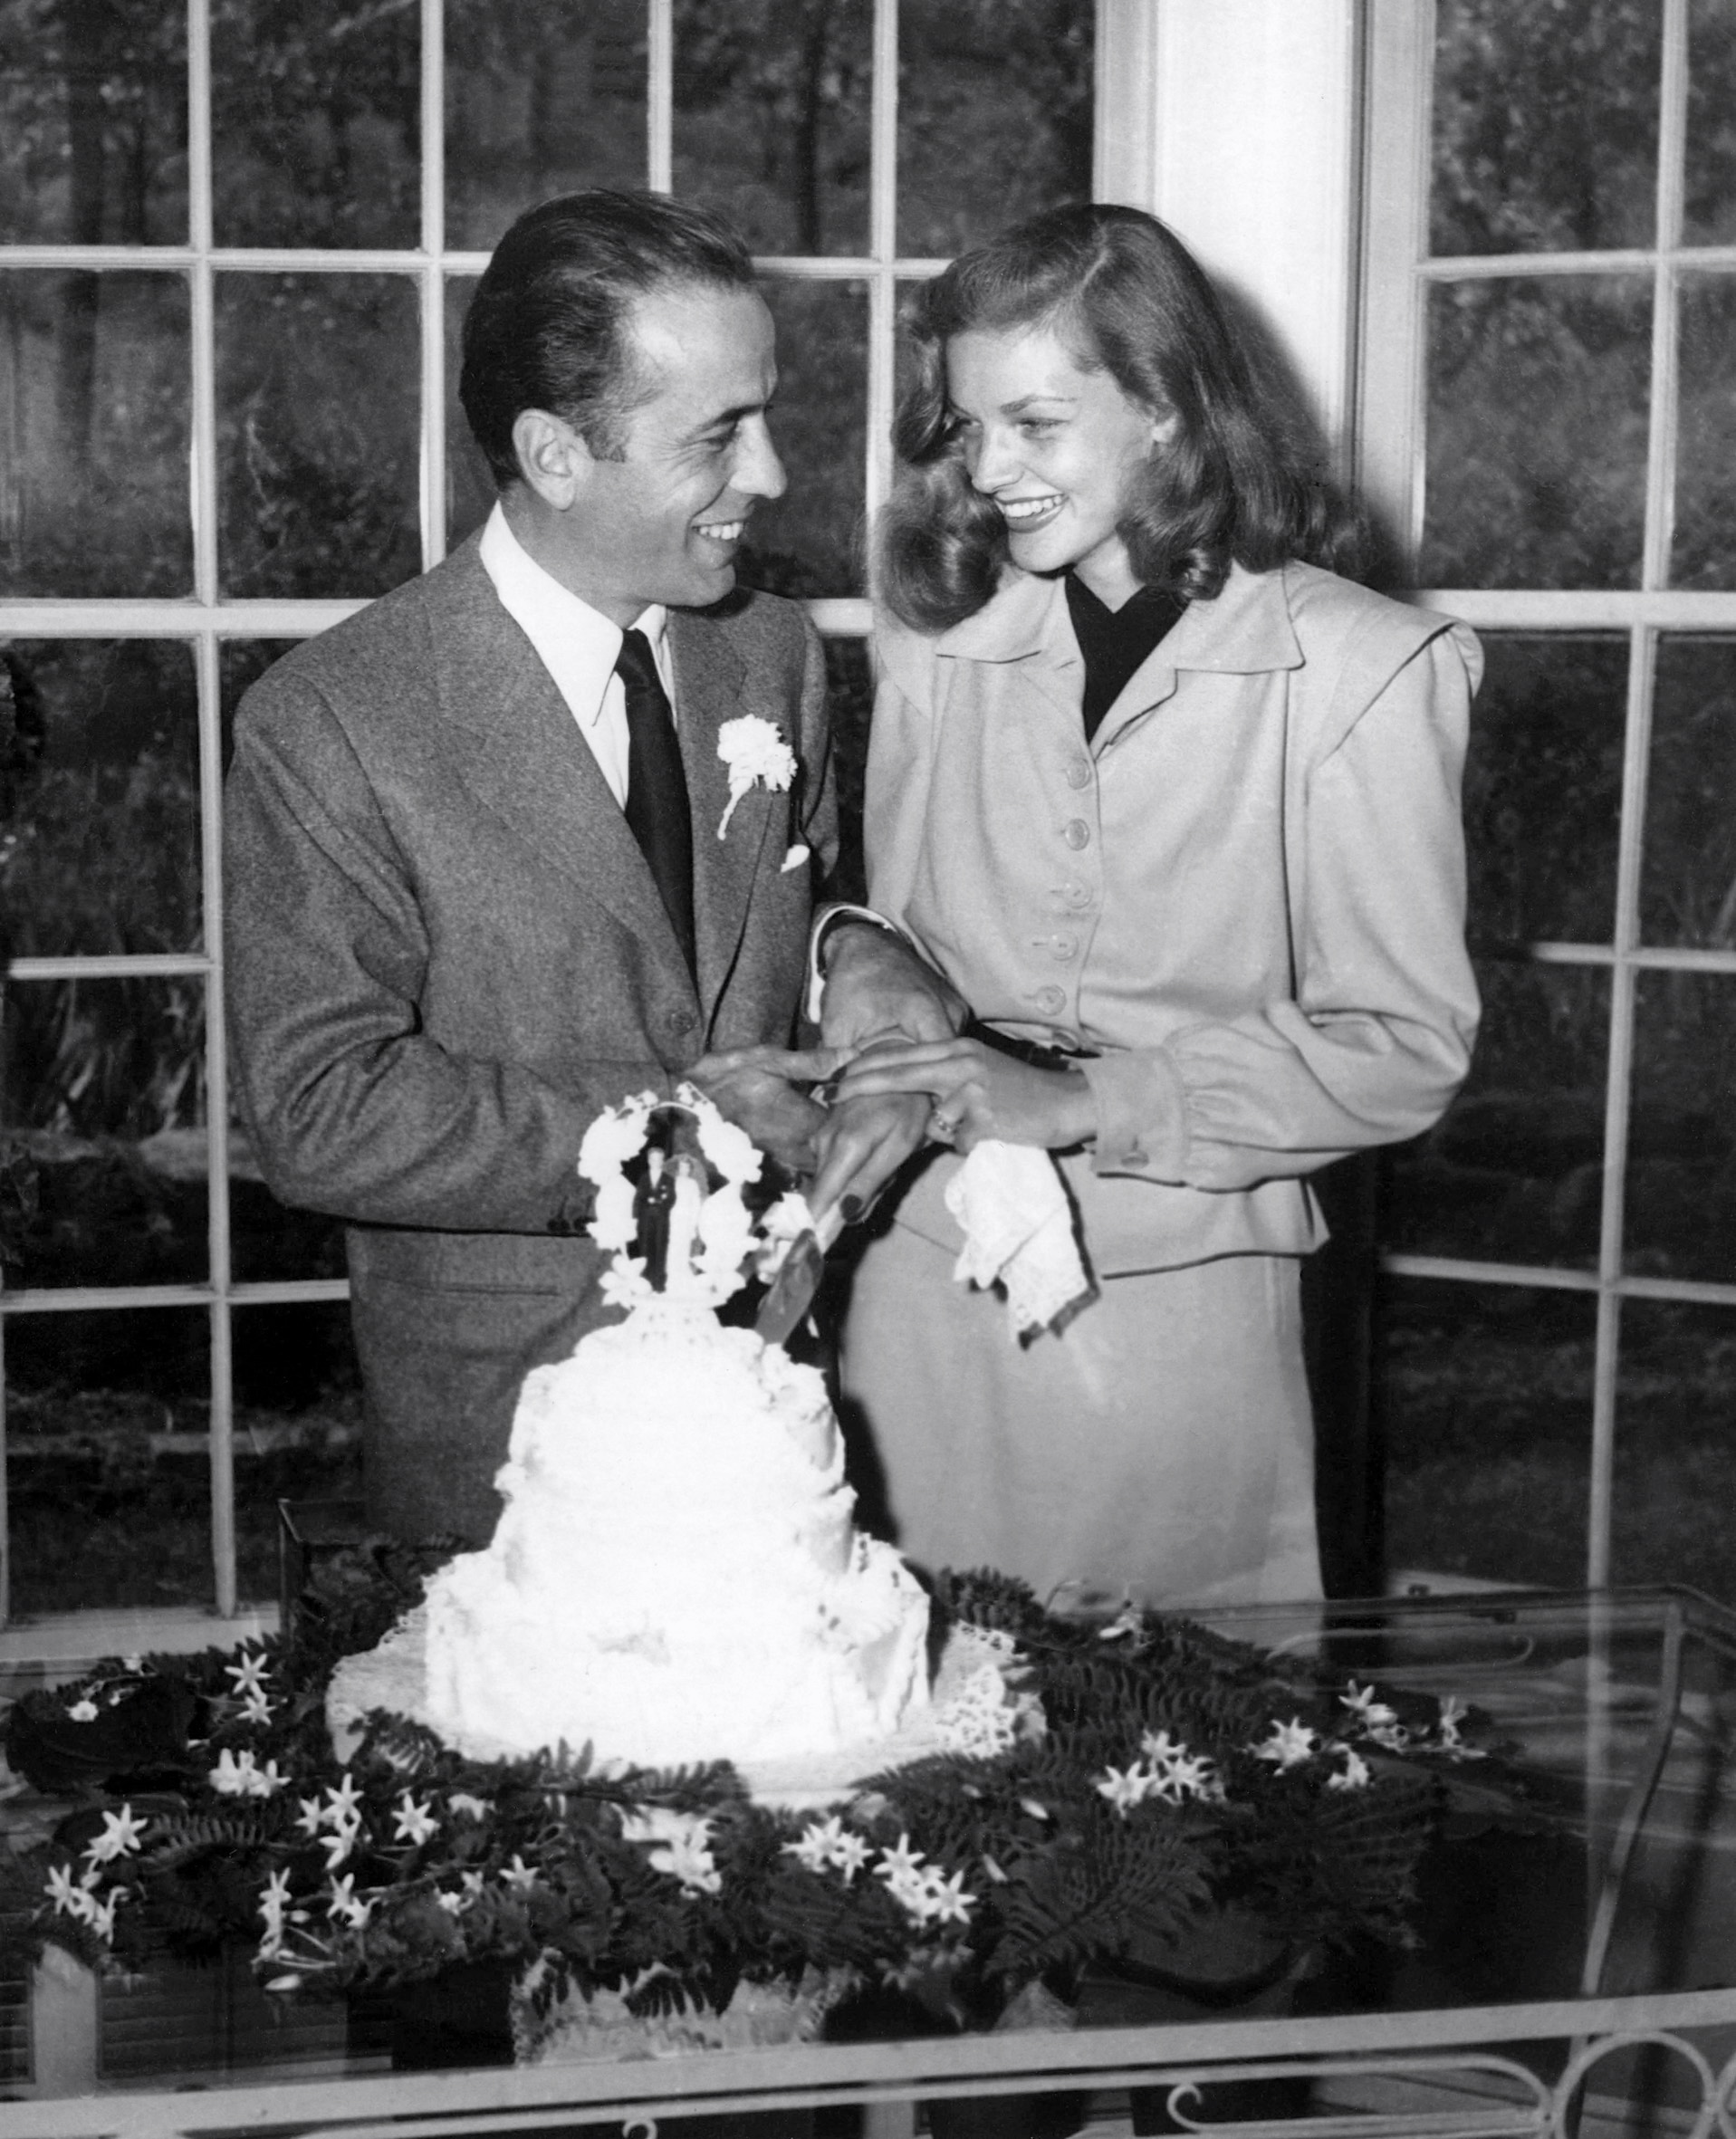 bogart and bacall s wedding beguiling hollywood